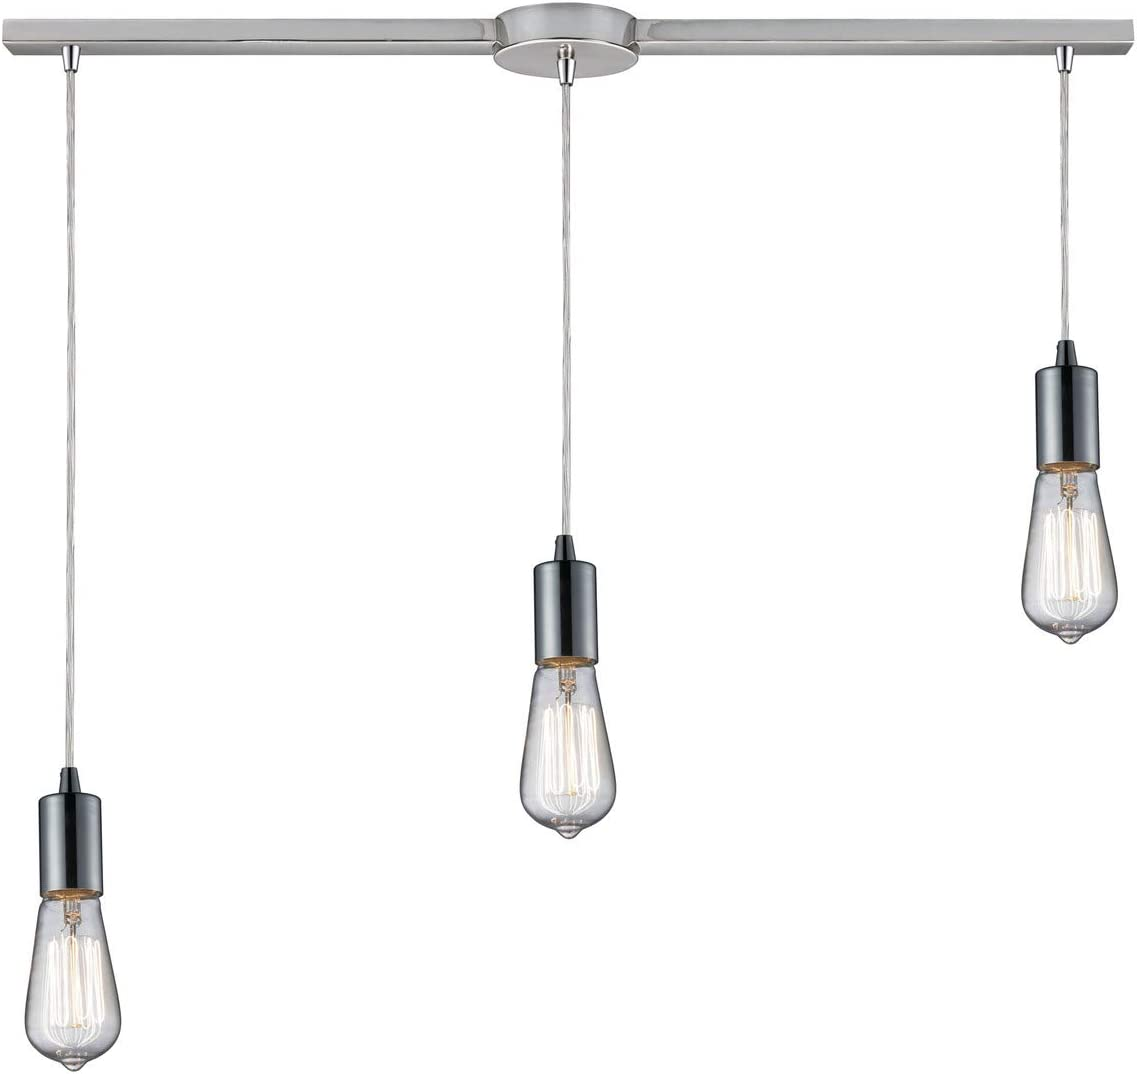 36 by 12-Inch Elk 60064-3L Menlow Park 3-Light Pendant with Glass Shade Polished Chrome Finish